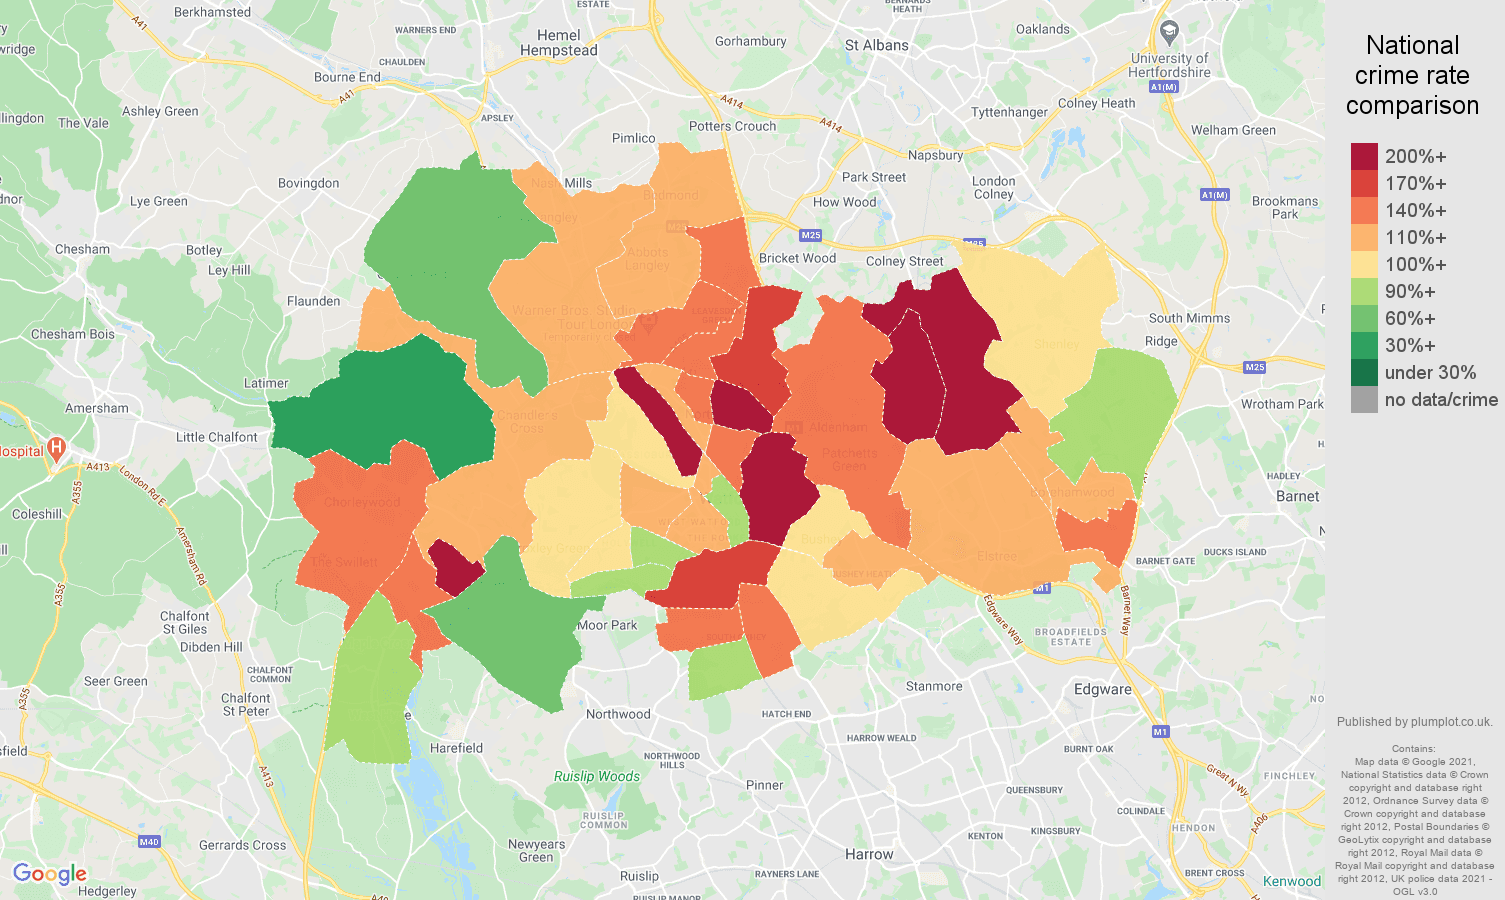 Watford vehicle crime rate comparison map